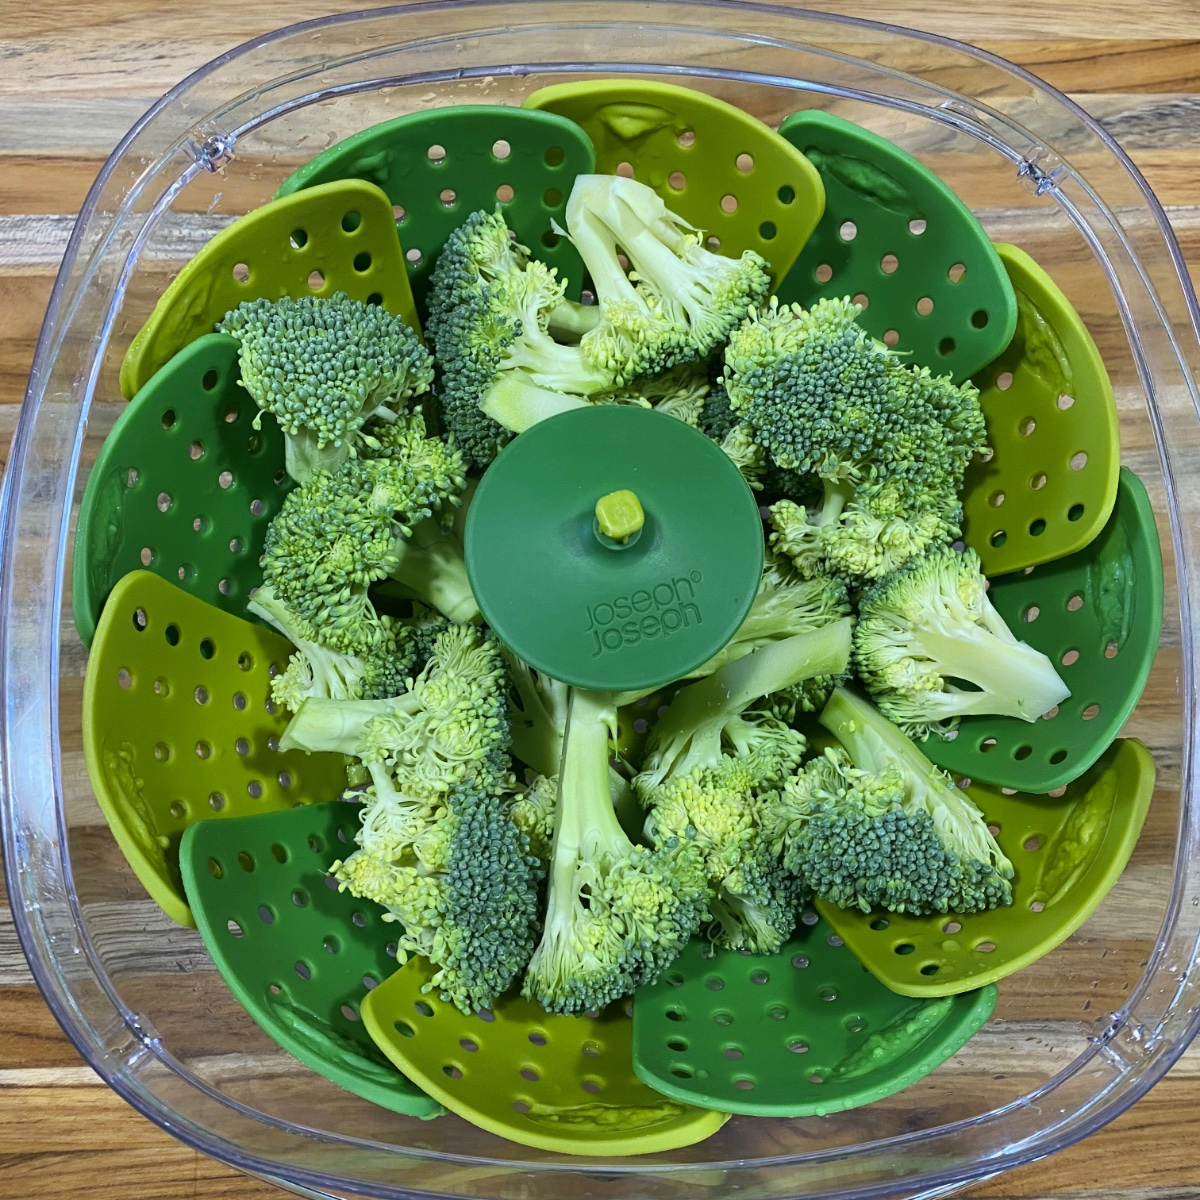 Broccoli florets in a do-it-yourself microwave steamer.